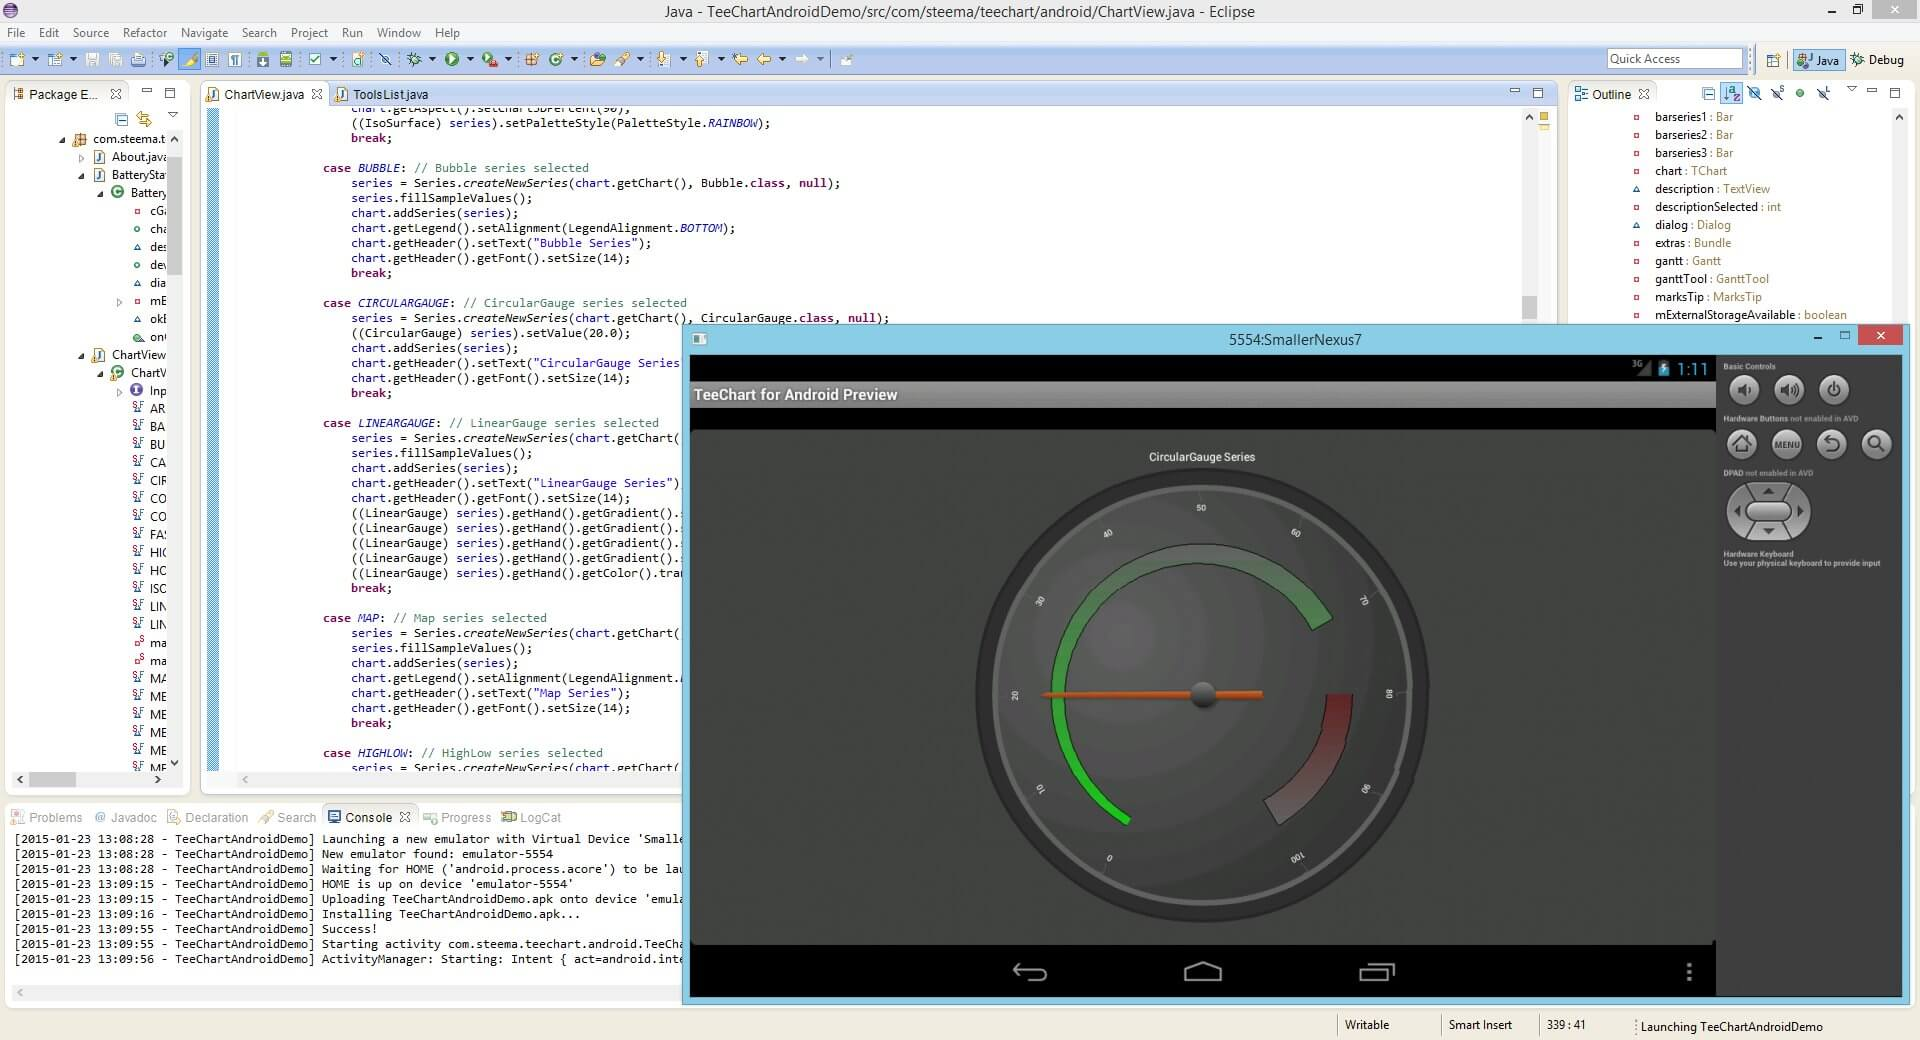 TeeChart Java for Android offers Circular and Linear Gauge types.